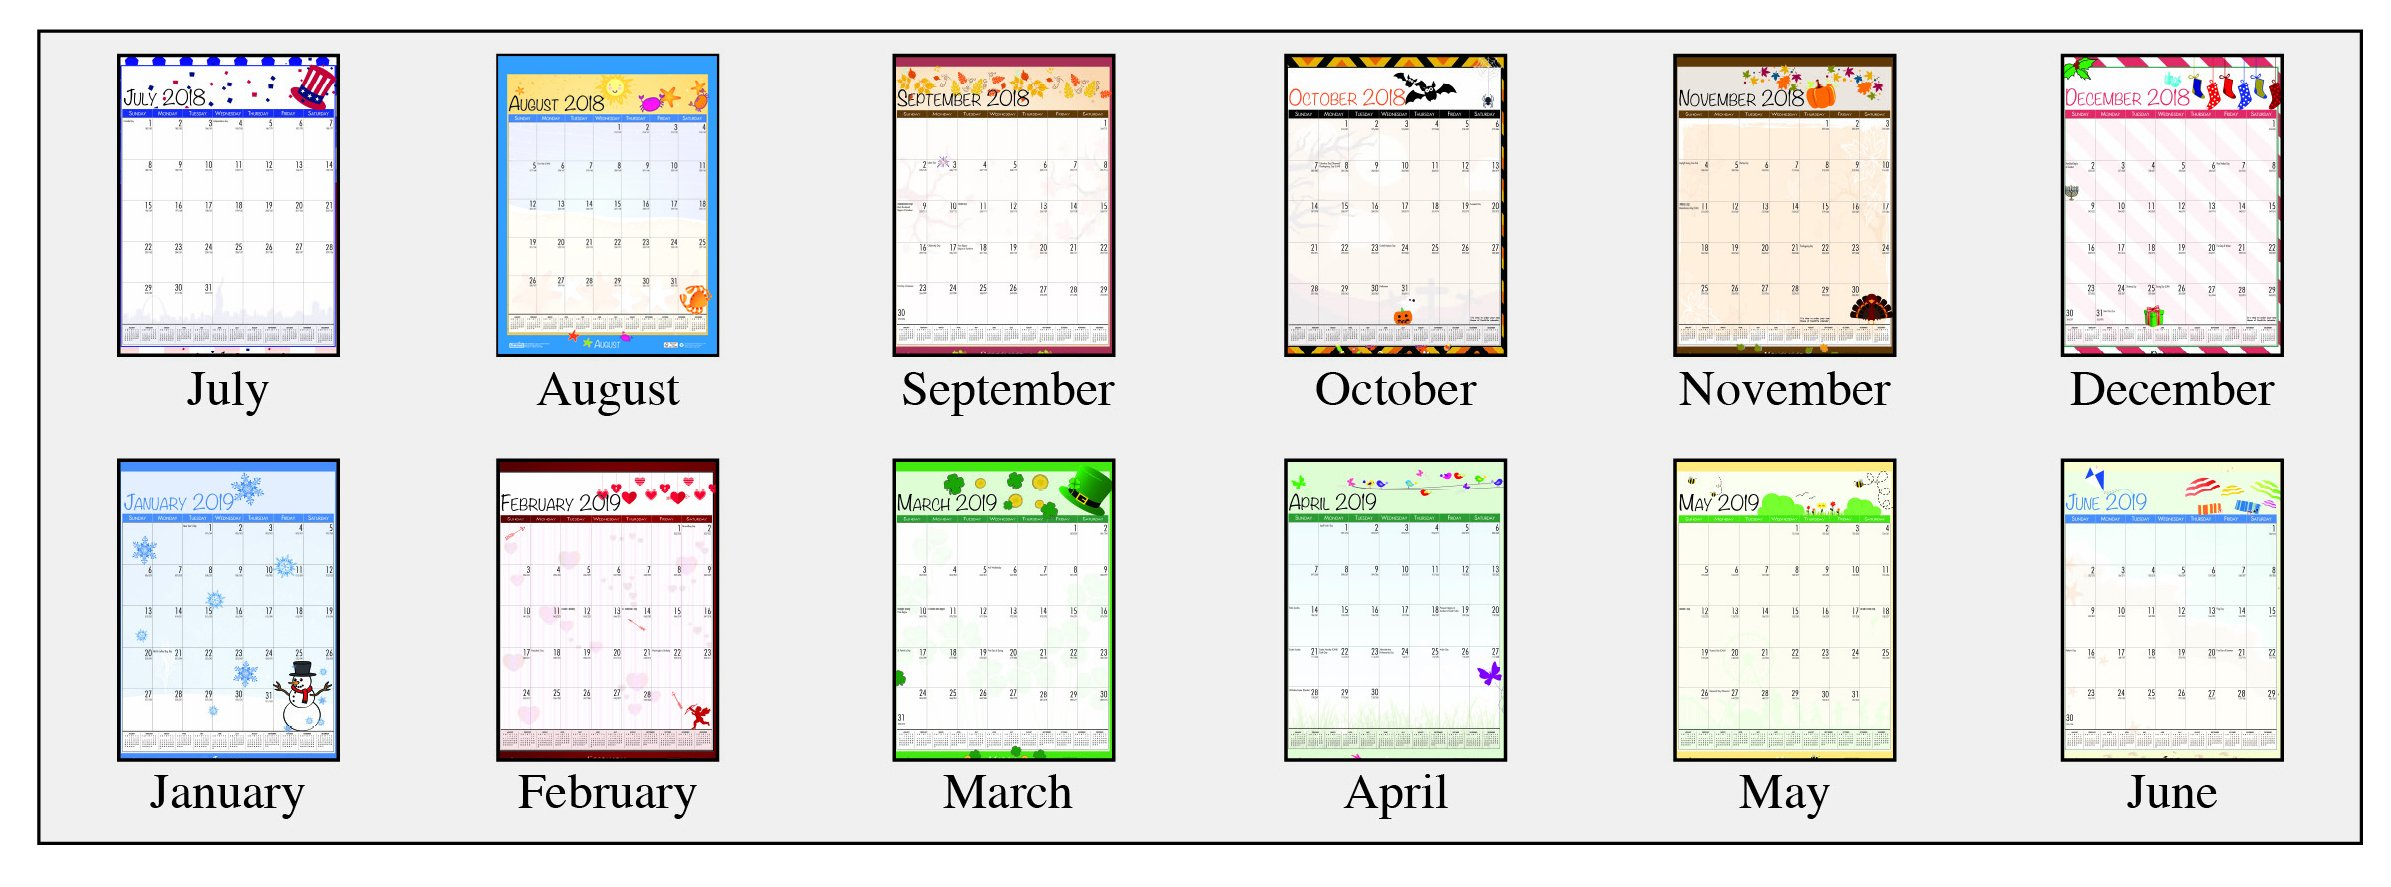 House of Doolittle 2018-2019 Monthly Seasonal Wall Calendar, Academic, 12 x 16.5 Inches, July - June, Case of 24 (HOD3395PK-19) by House of Doolittle (Image #2)